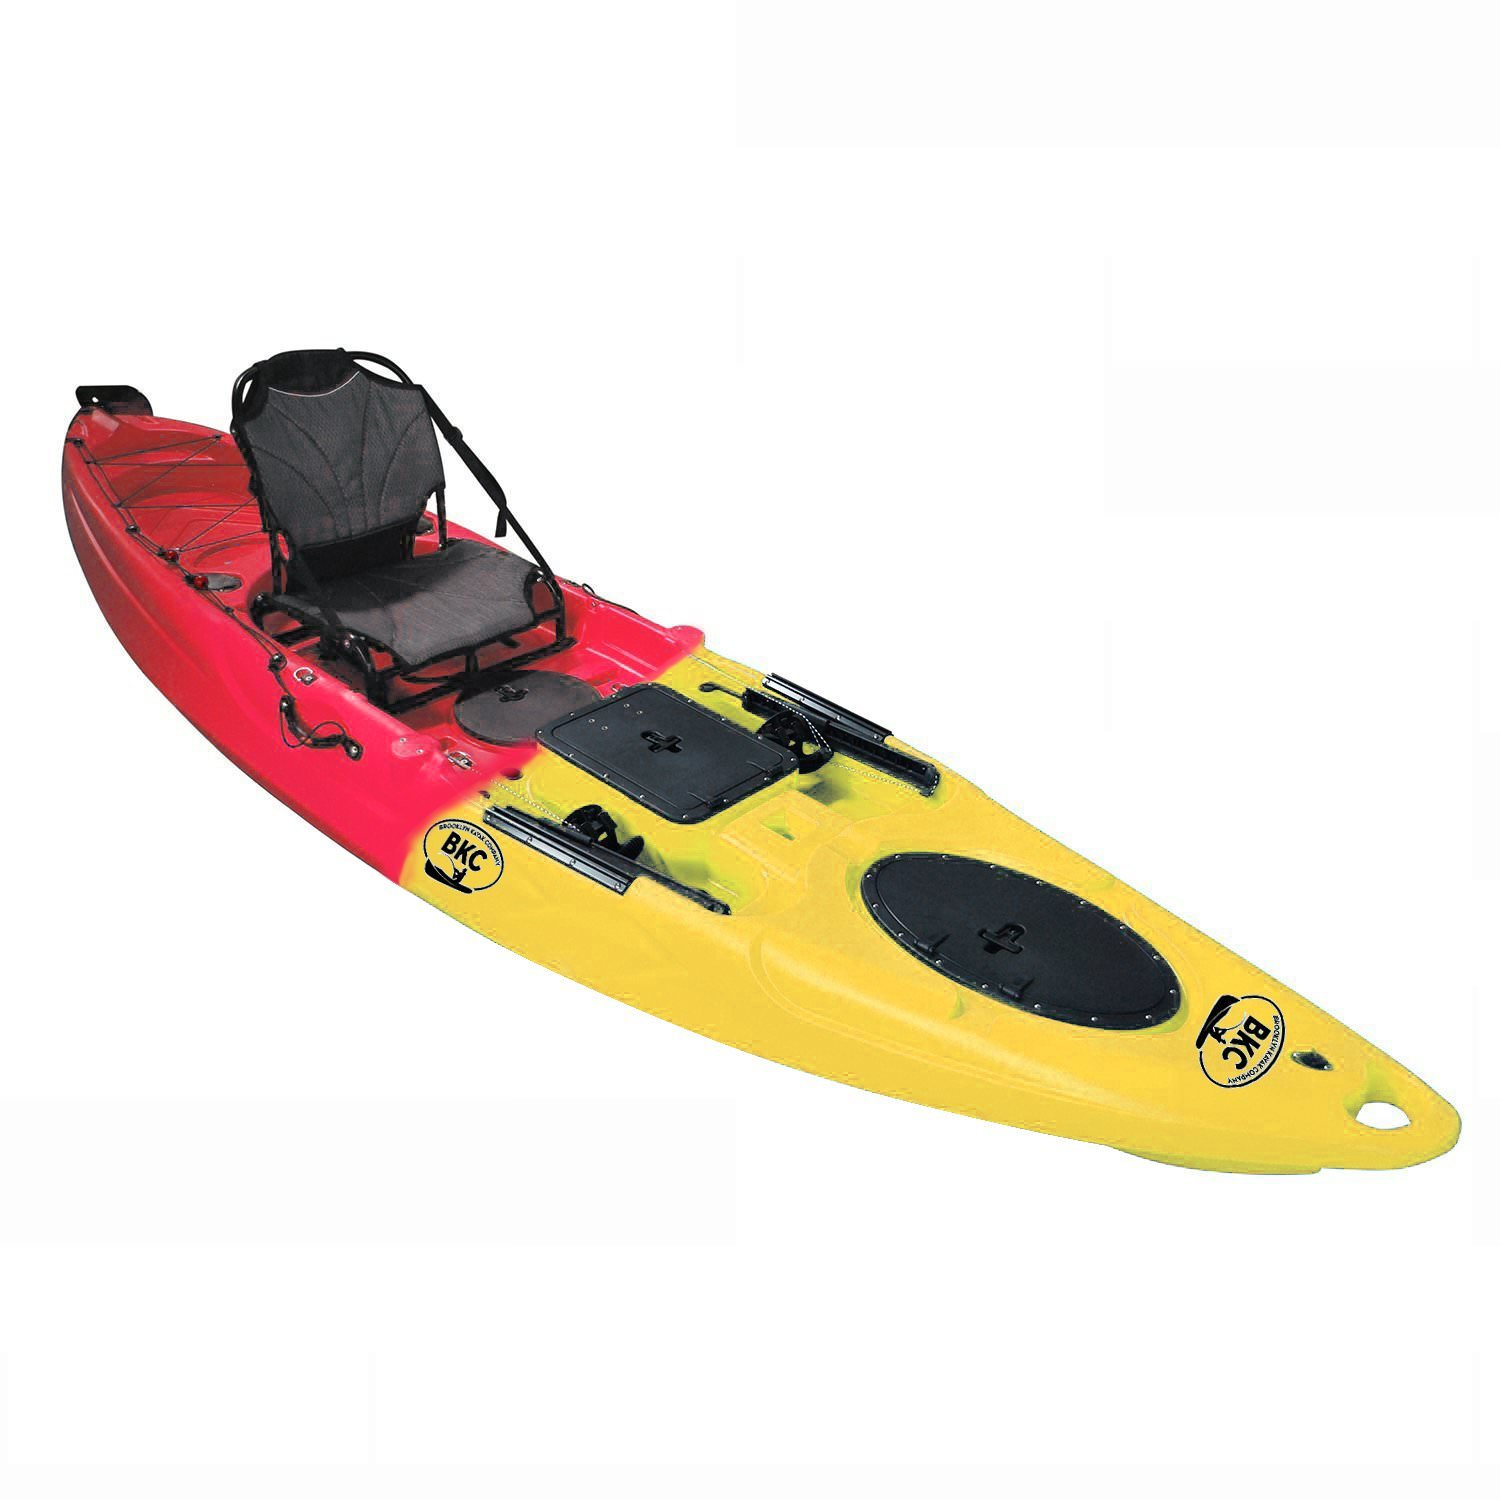 BKC UH-RA220 11.5 foot Angler Sit On Top Fishing Kayak with Paddles and Upright Chair and Rudder System Included by Brooklyn Kayak Company